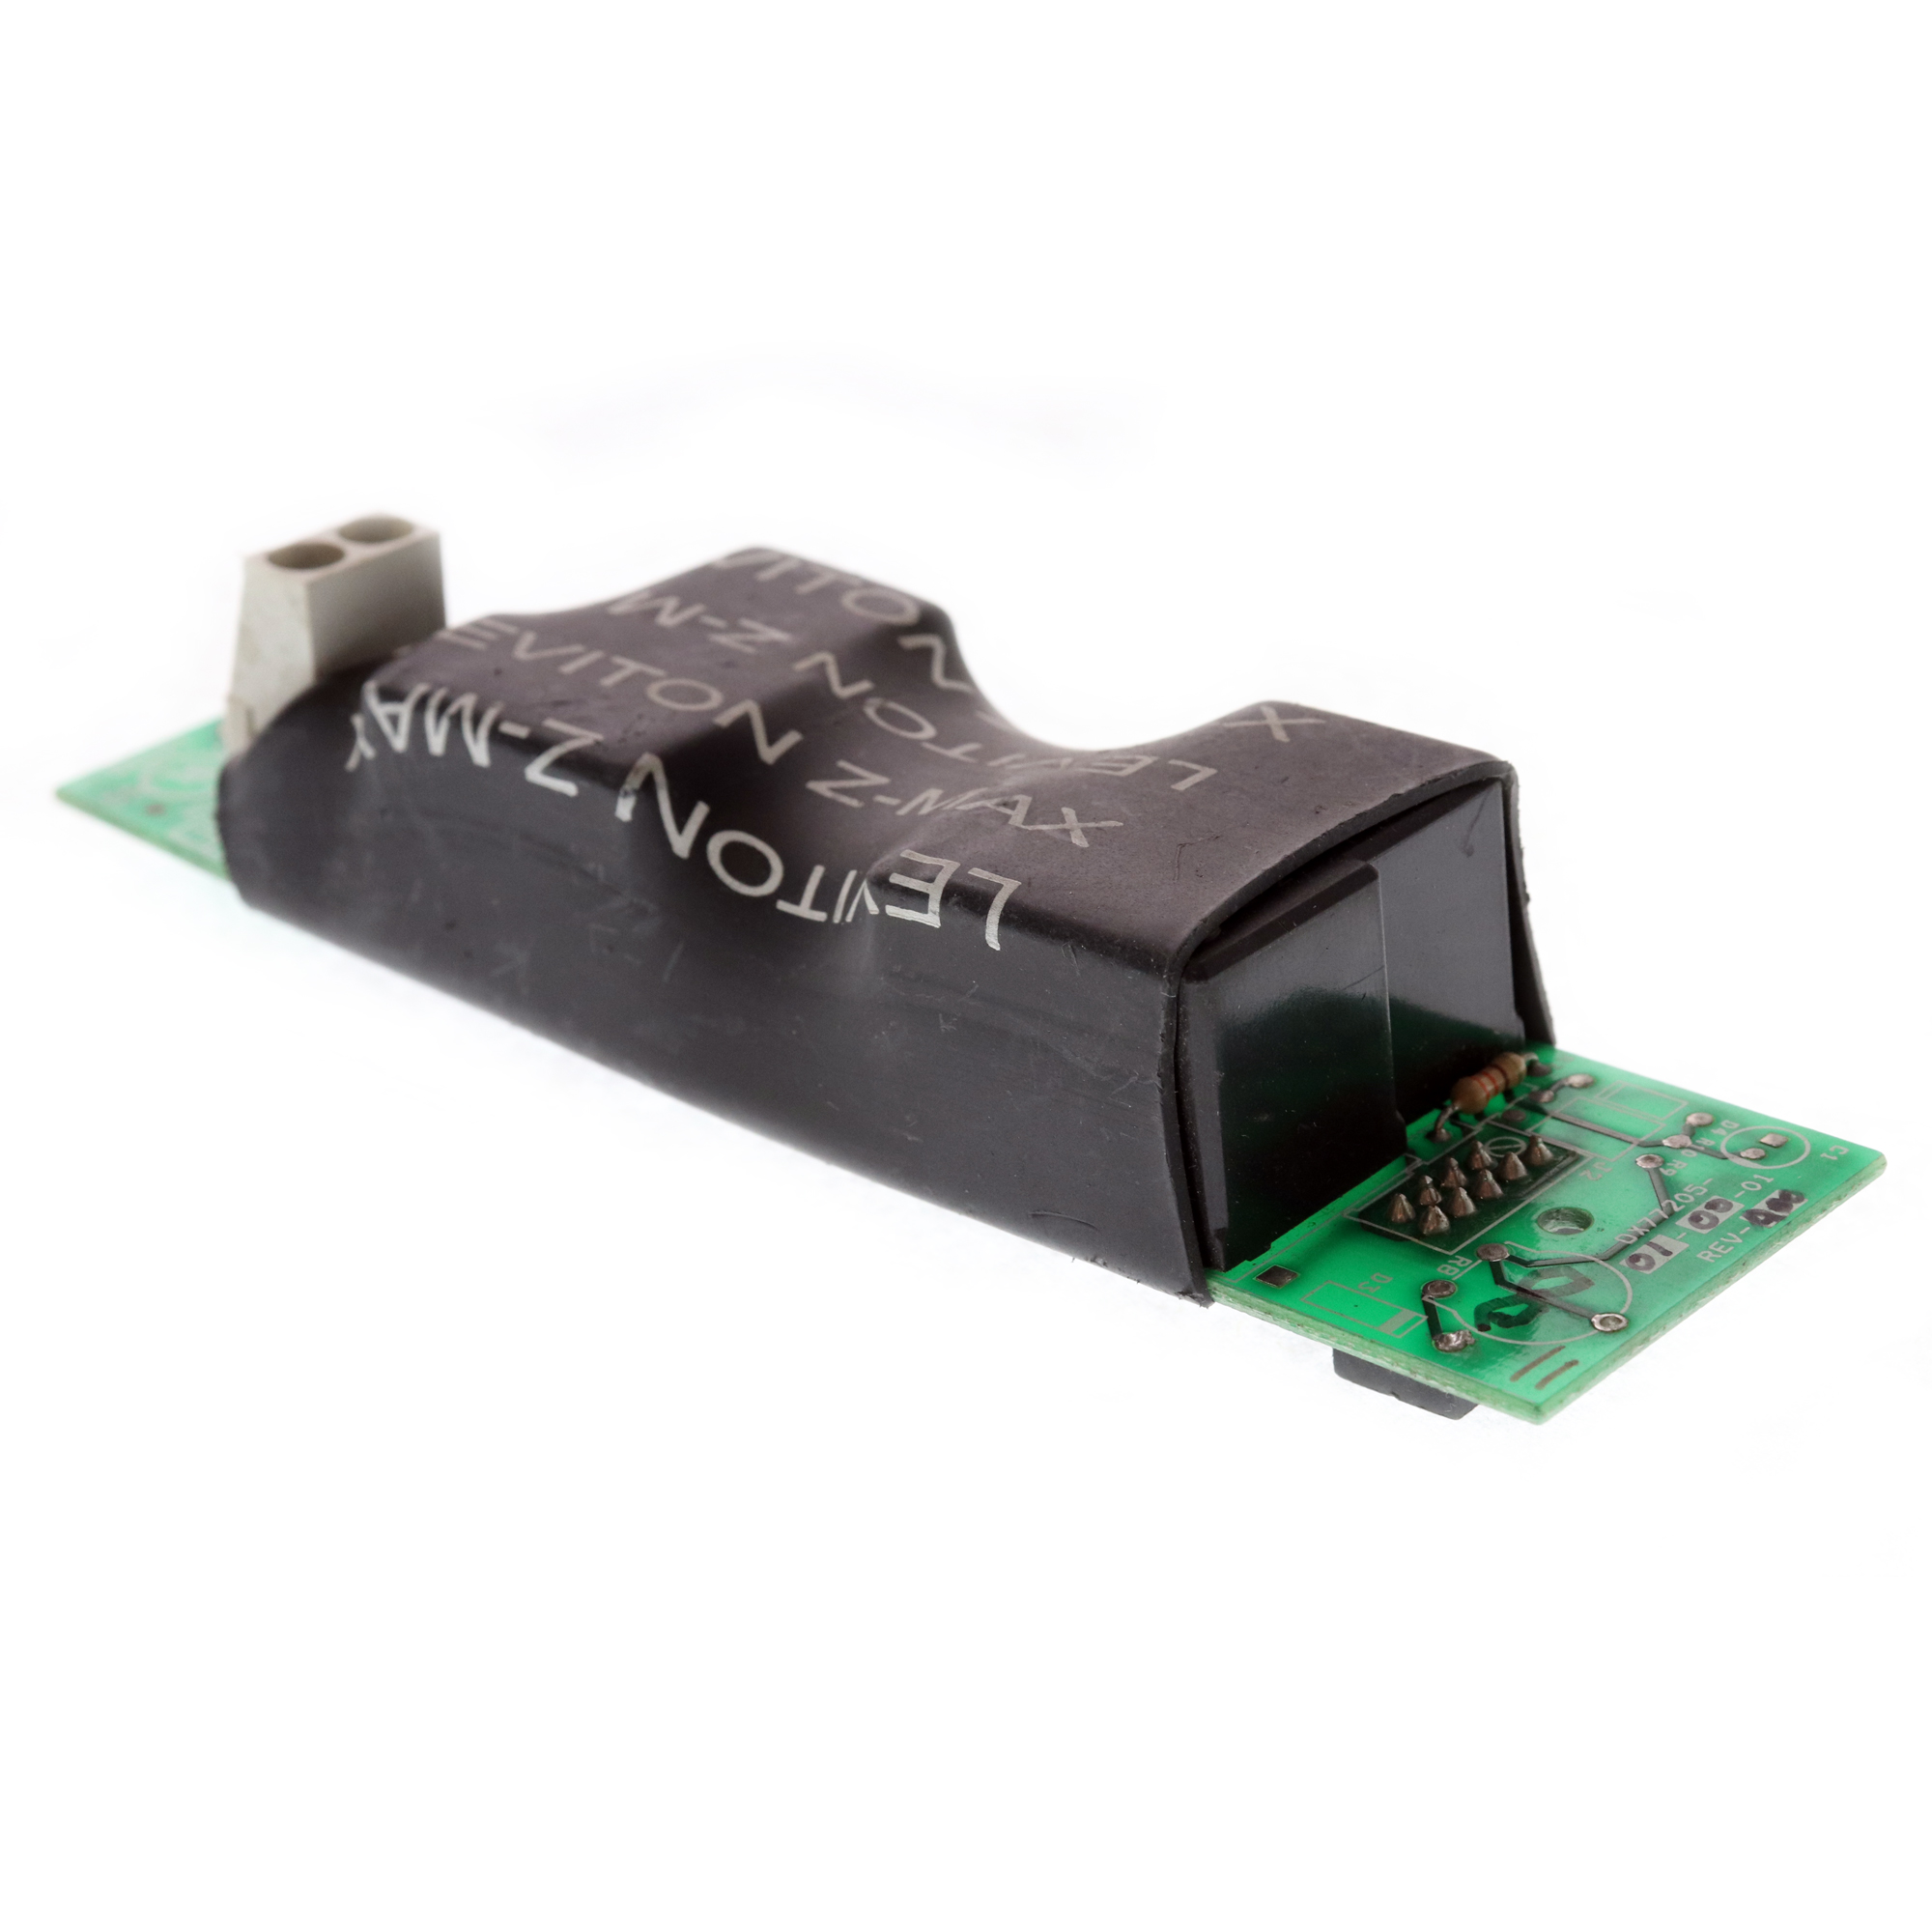 LEVITON RELAY-ST2 LIGHTING CONTROL RELAY CARD, 1-POLE, 20A, 120/277V ...